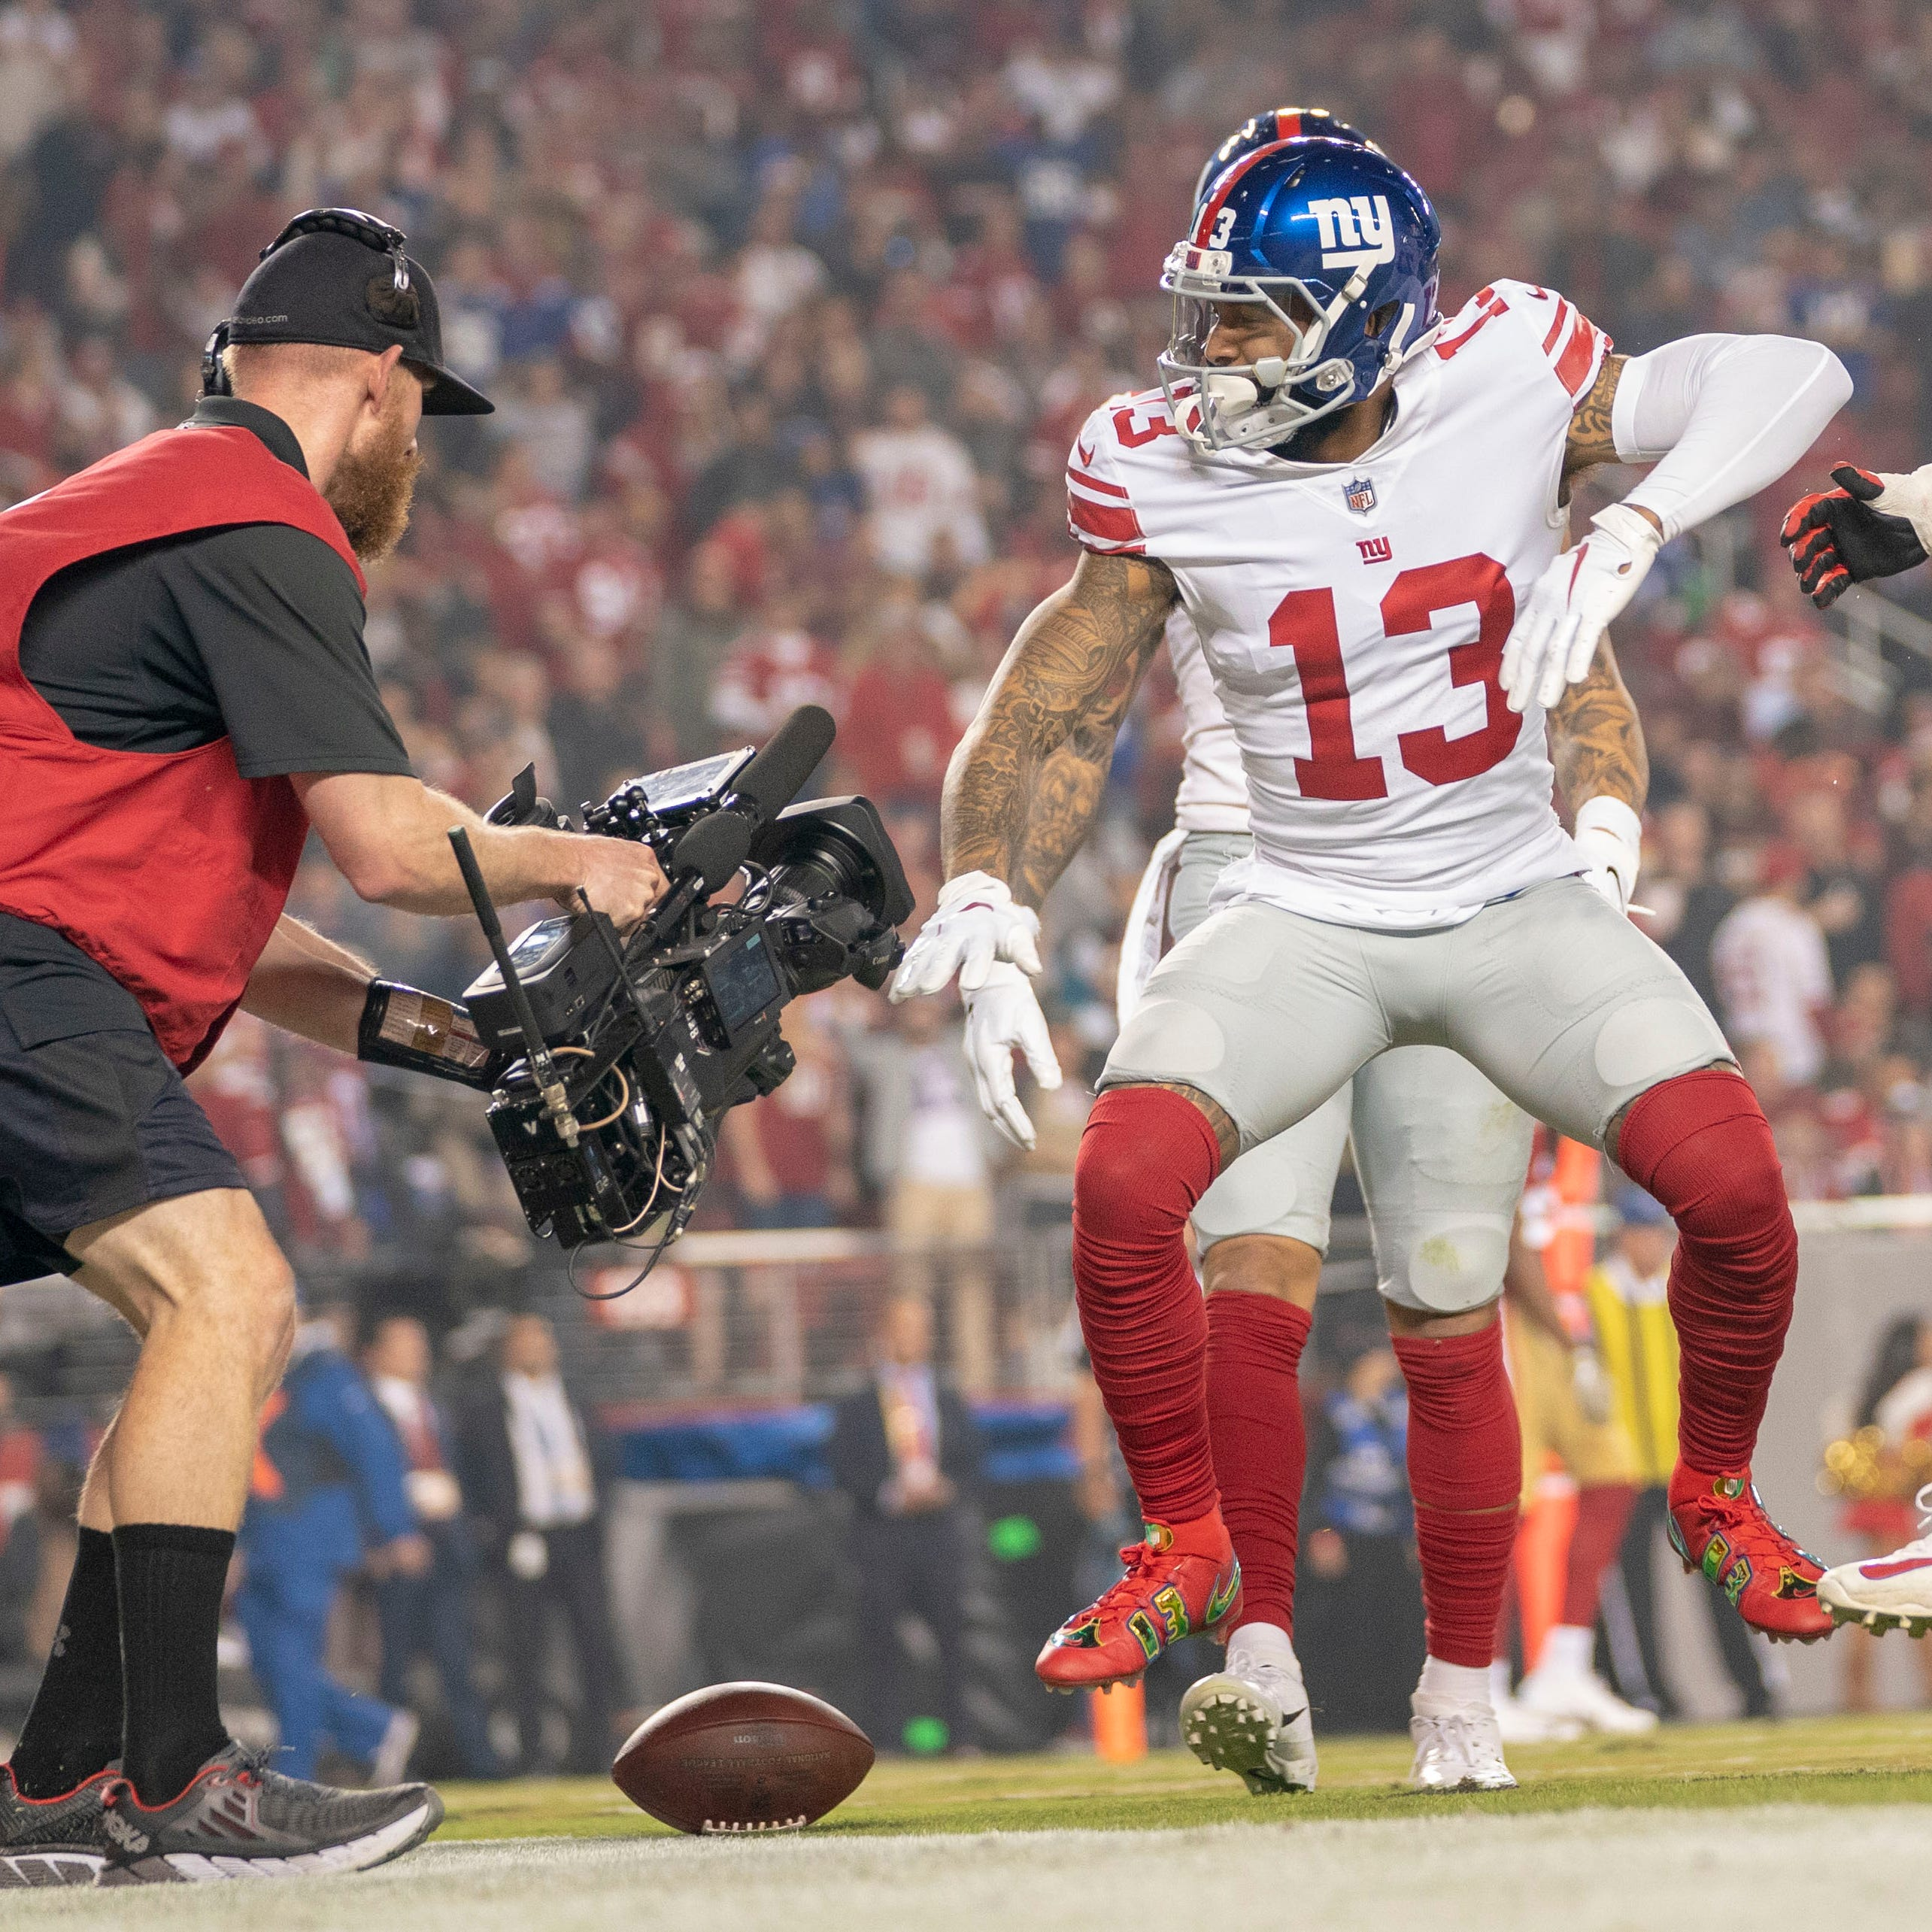 NY Giants' Odell Beckham Jr., 49ers' Marquise Goodwin share emotional Monday night moment